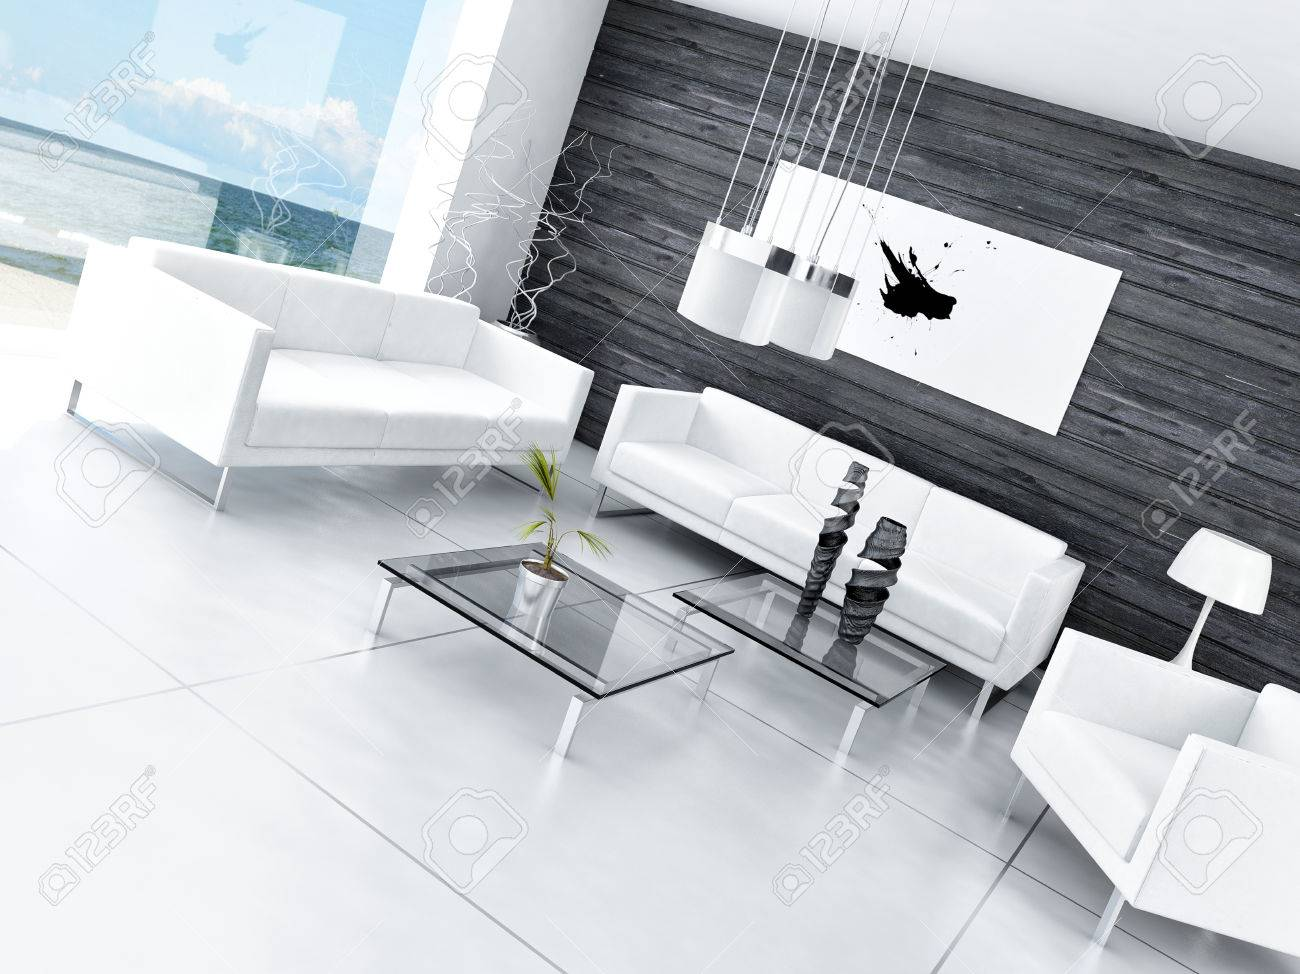 Wohnzimmer Modern Schwarz Weiß Modern Design Black And White Living Room Interior Stock Photo, Picture And Royalty Free Image. Image 31819061.